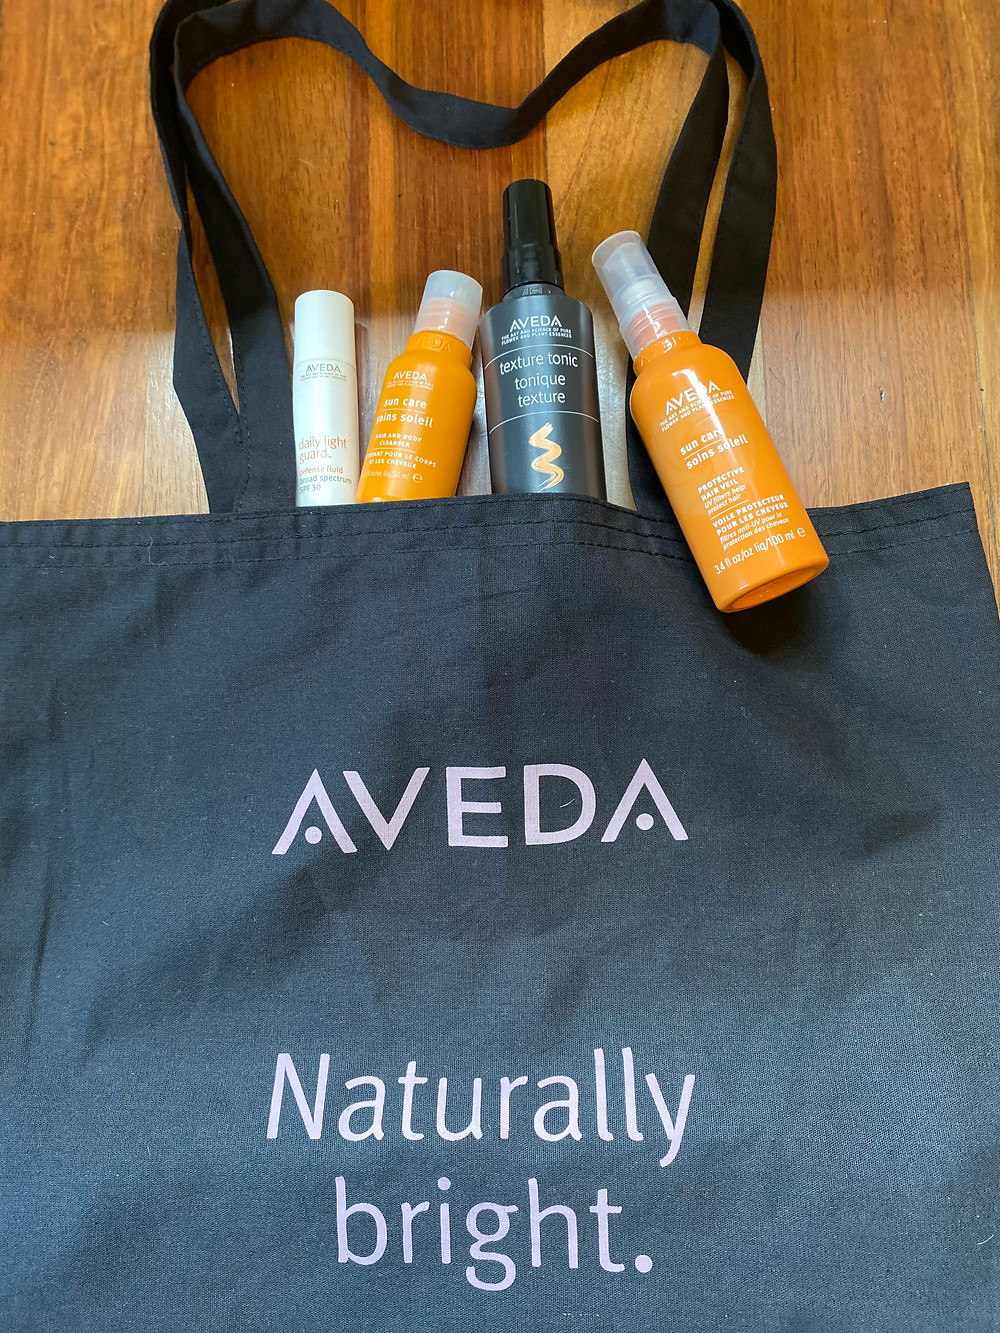 Aveda Naturally Bright tote bag with Aveda products Daily Light Guard, Sun Care Hair Veil, Texture Tonic, and travel size of Sun Care Hair and Body Wash